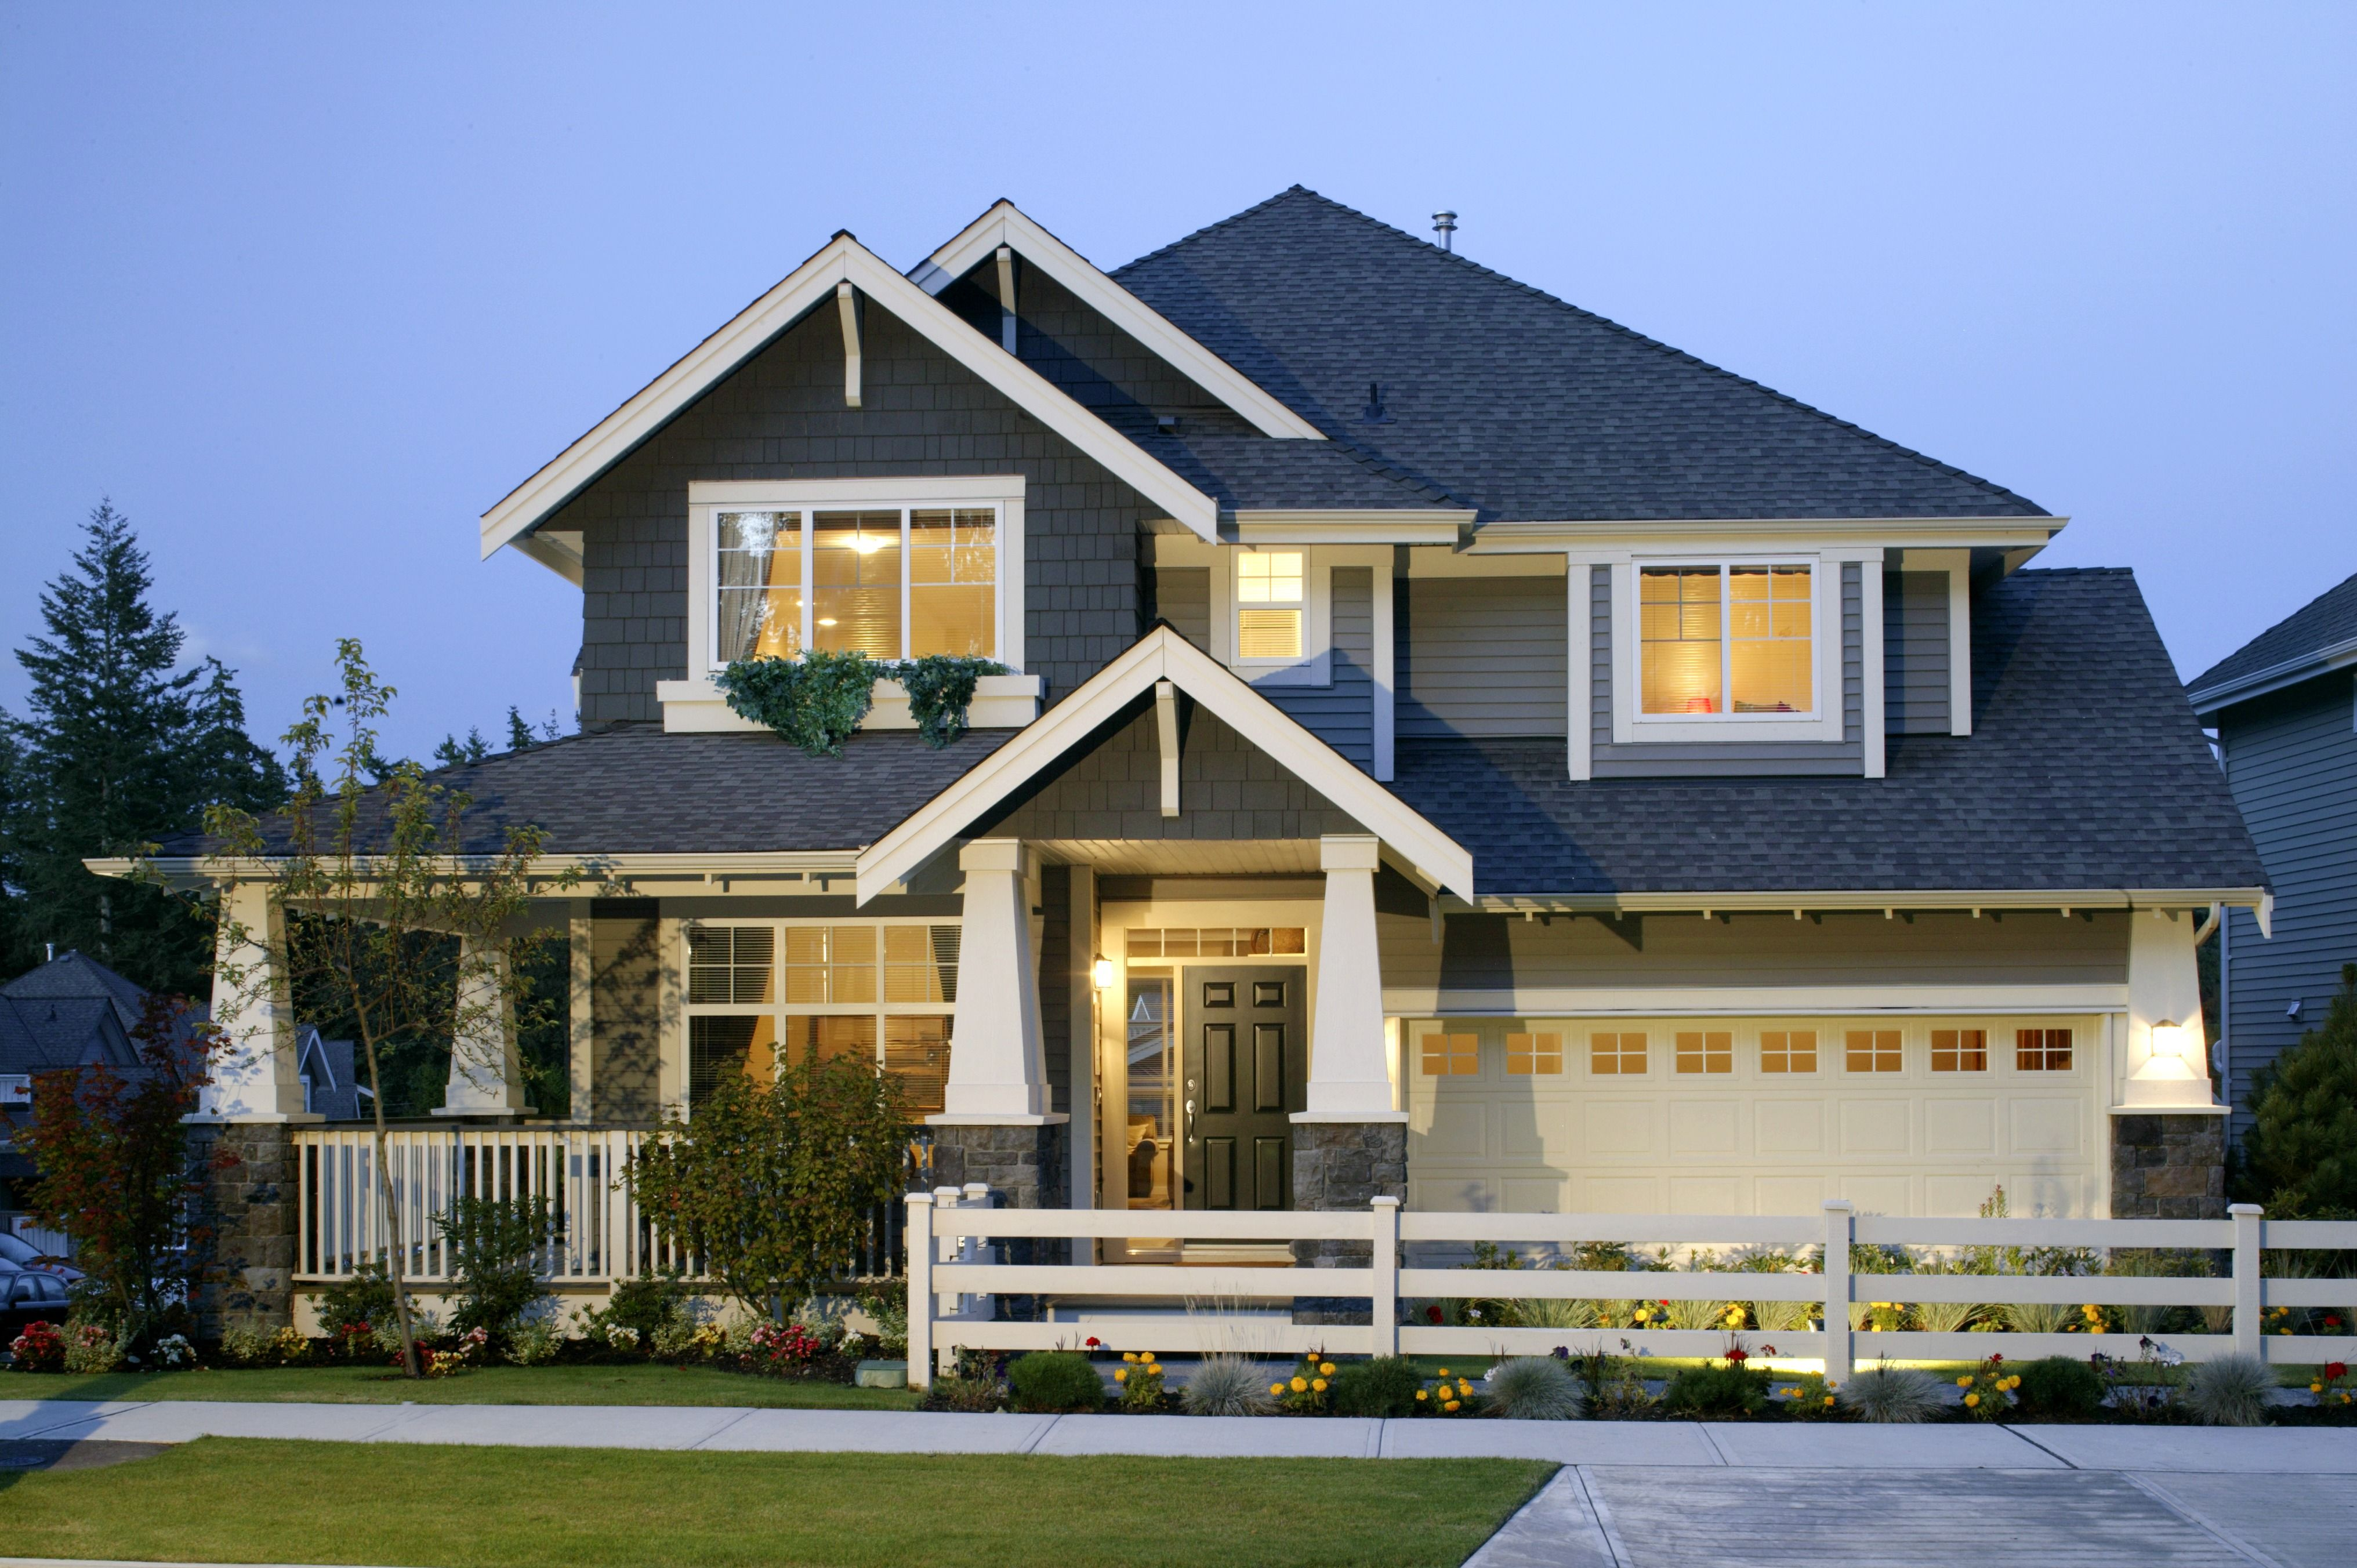 Diy tips for how to power wash siding front view of